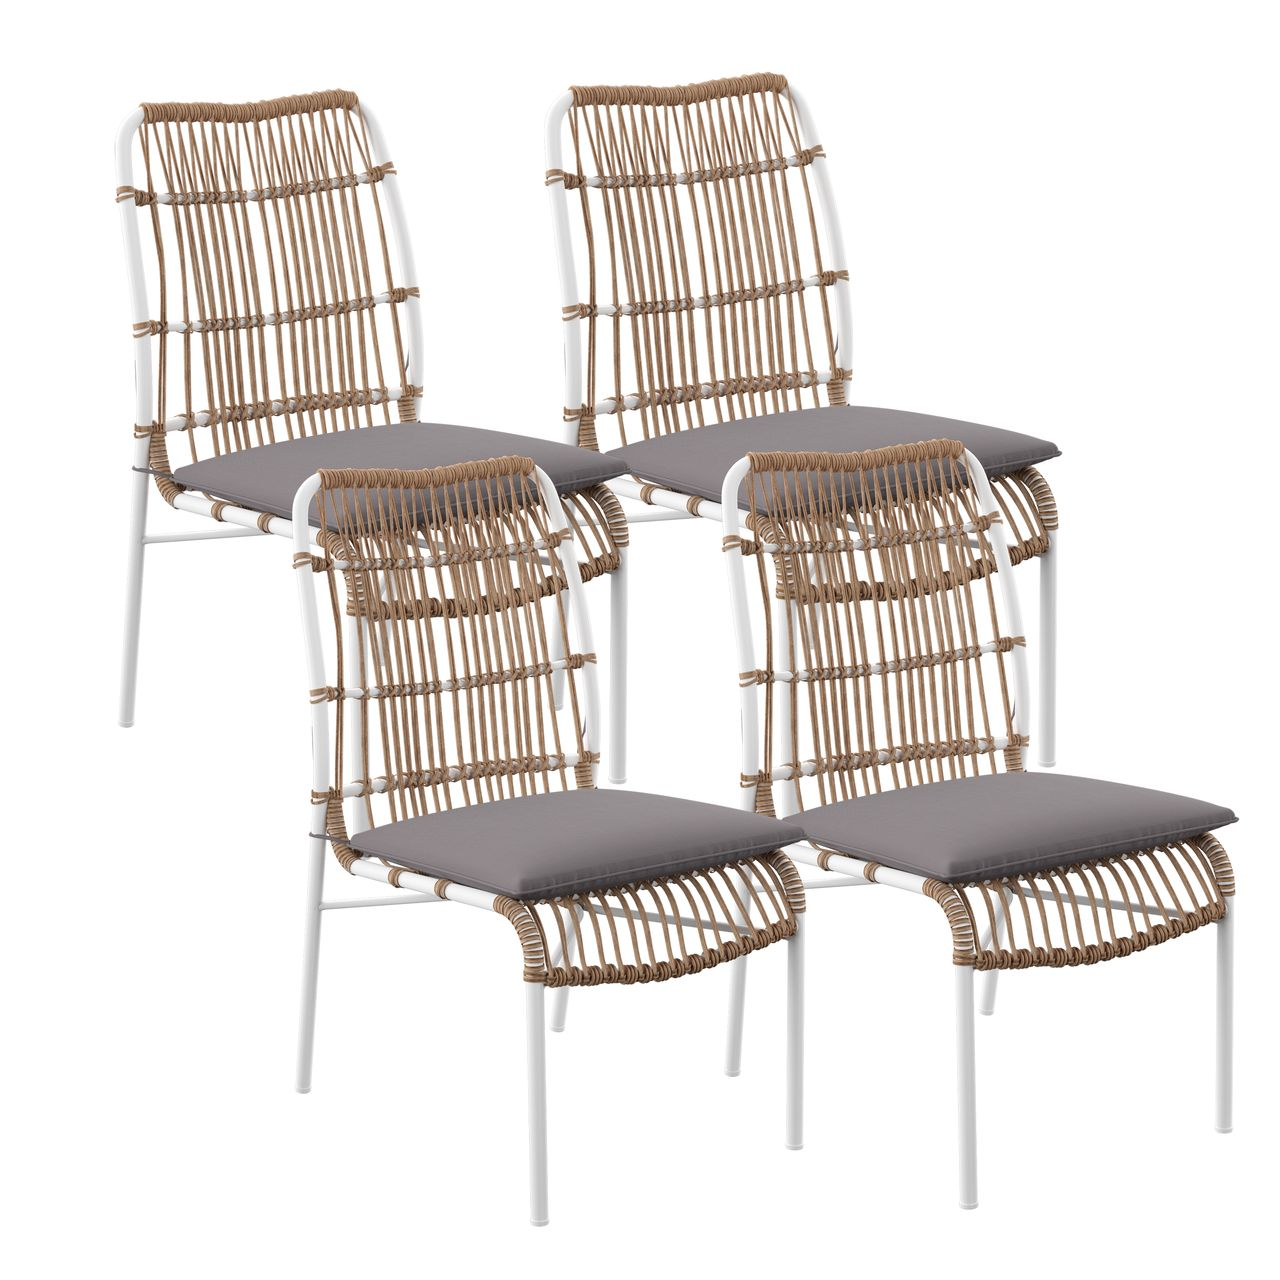 SEI Longino Outdoor Dining Chairs in Gray / White / Natural - Set of 4